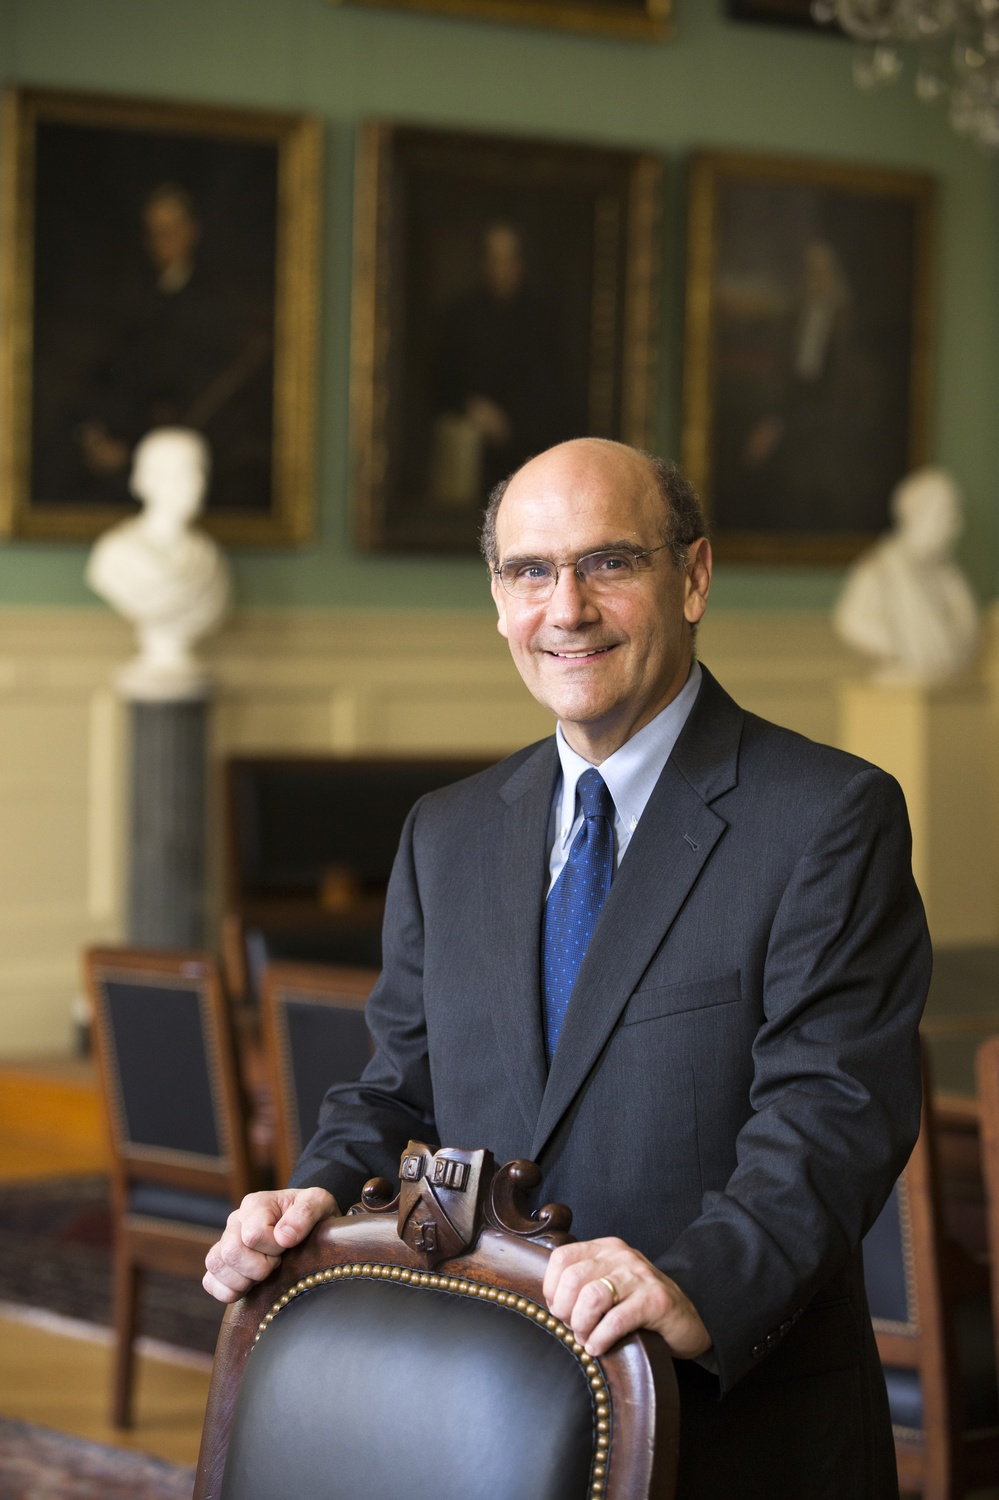 Robert W. Iuliano '83, Harvard's senior Vice President and General Counsel, oversees the University's legal strategy.